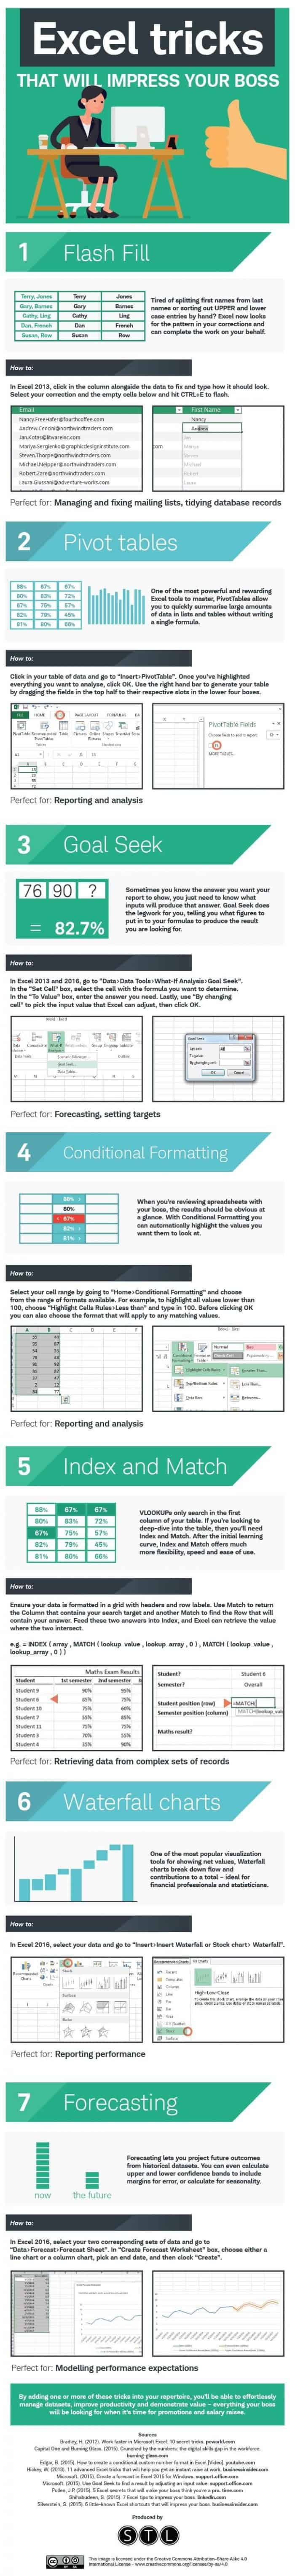 infographic describes microsoft Excel tricks and tips